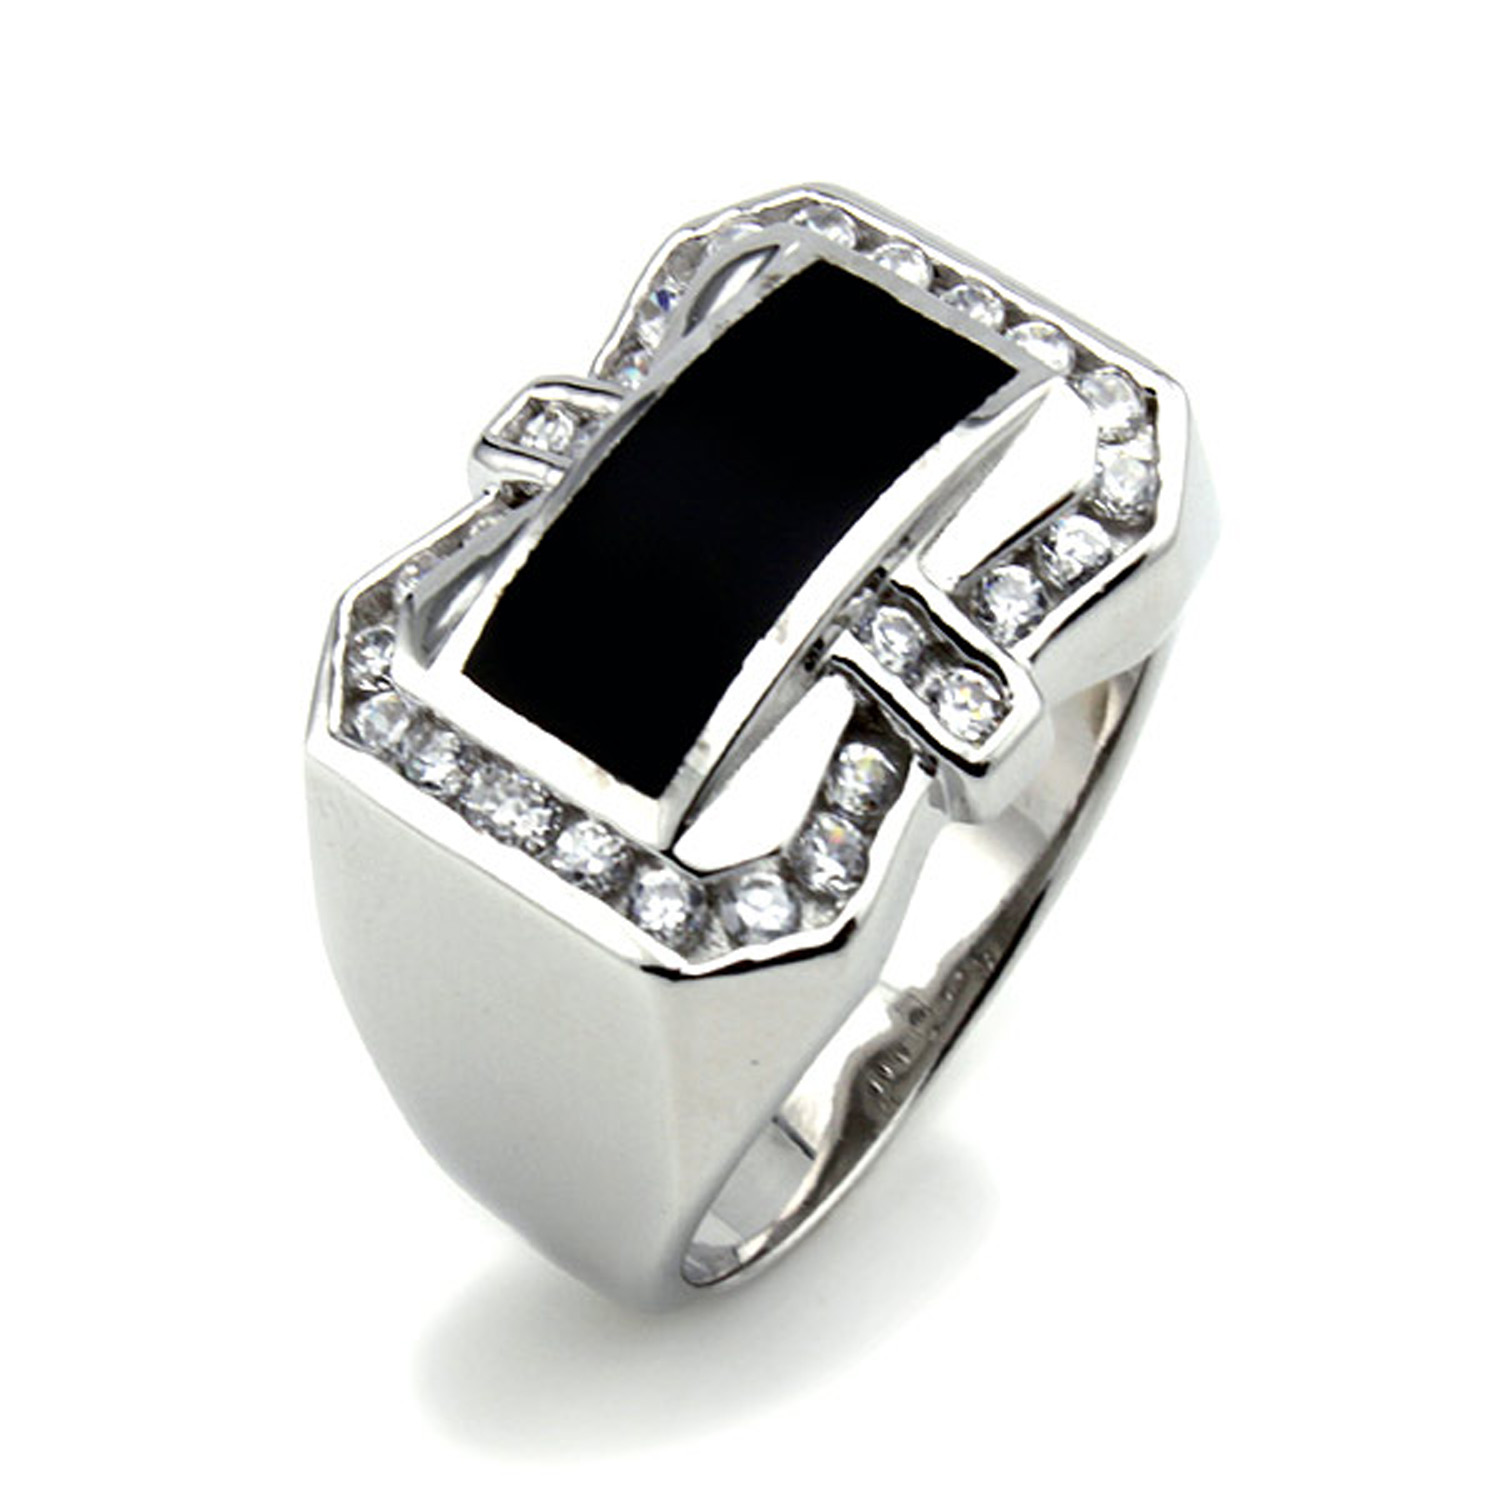 STERLING SILVER Cubic Zirconia Black Resin Ring